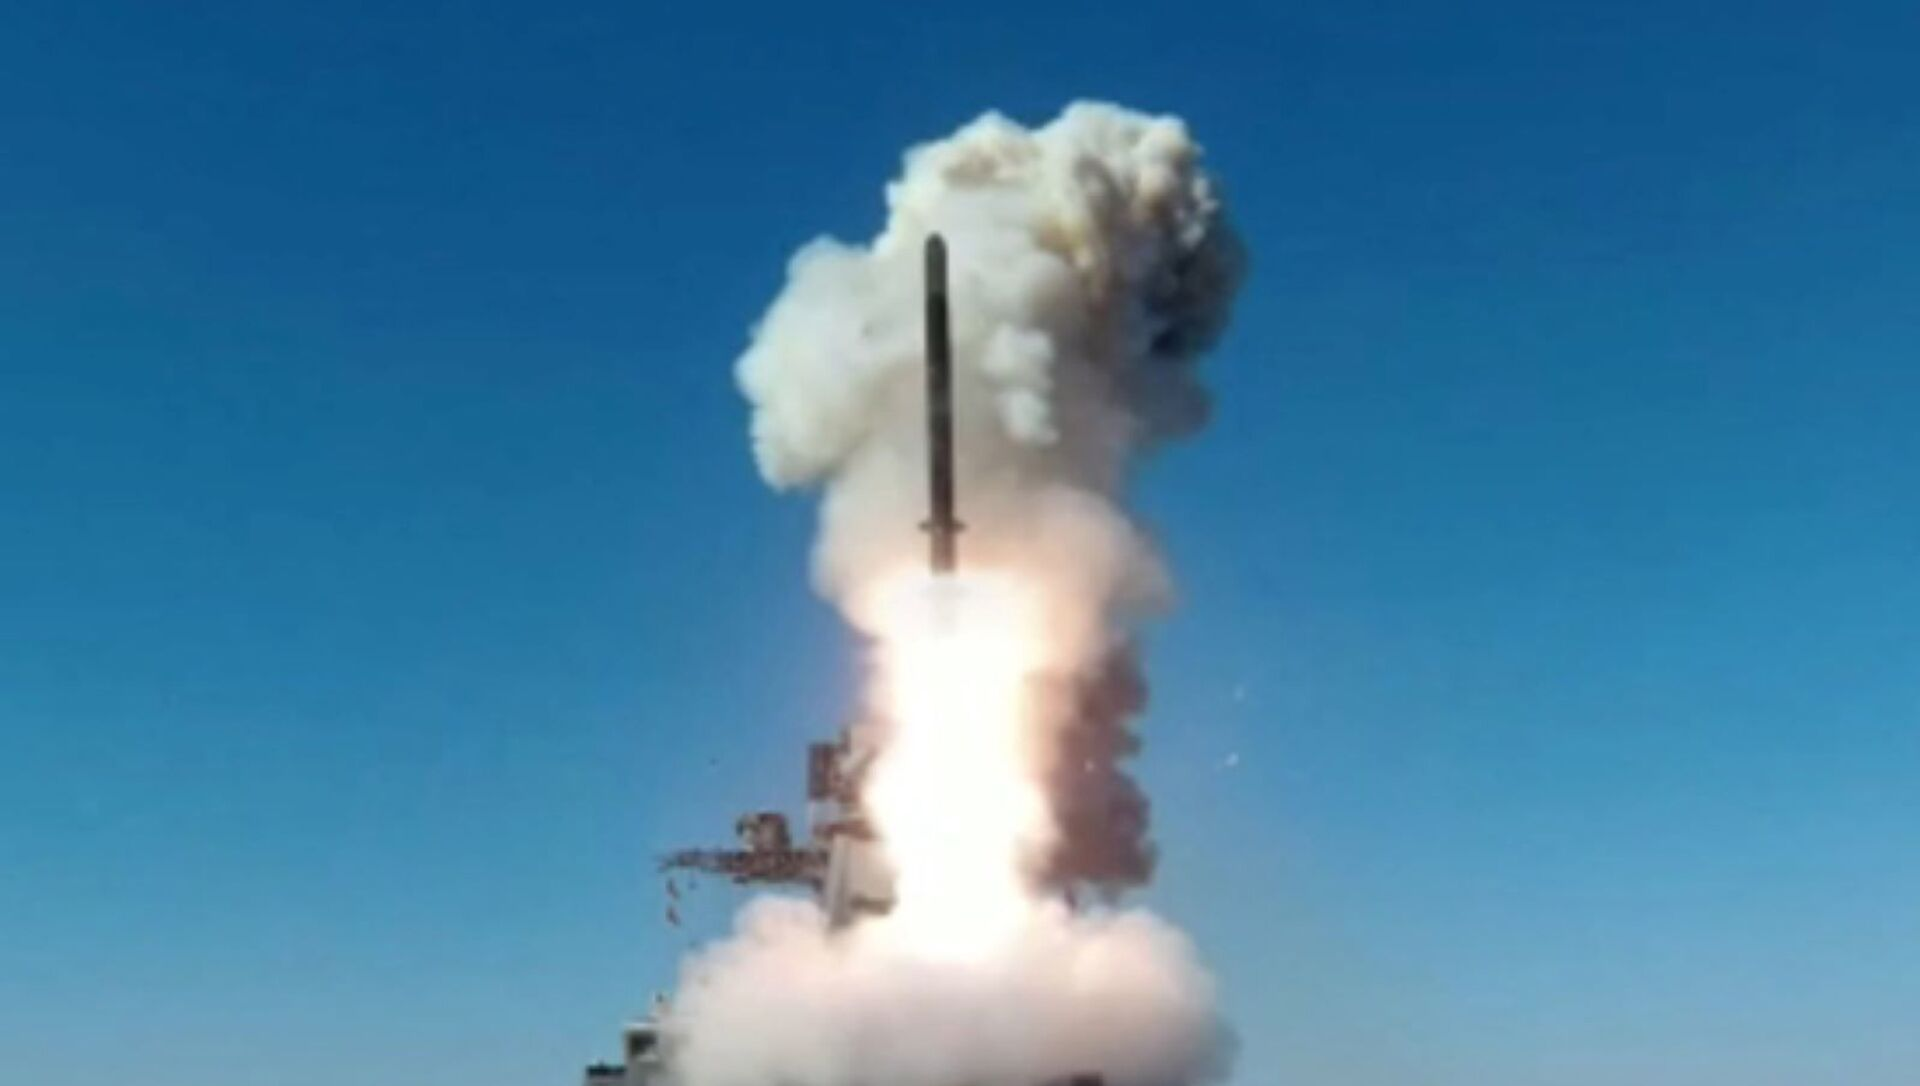 A modernized frigate from the Russian Pacific Fleet, the Marshal Shaposhnikov, carries out the first test of the Kalibr cruise missile in the Sea of Japan, 6 April, 2021 - Sputnik Italia, 1920, 06.04.2021